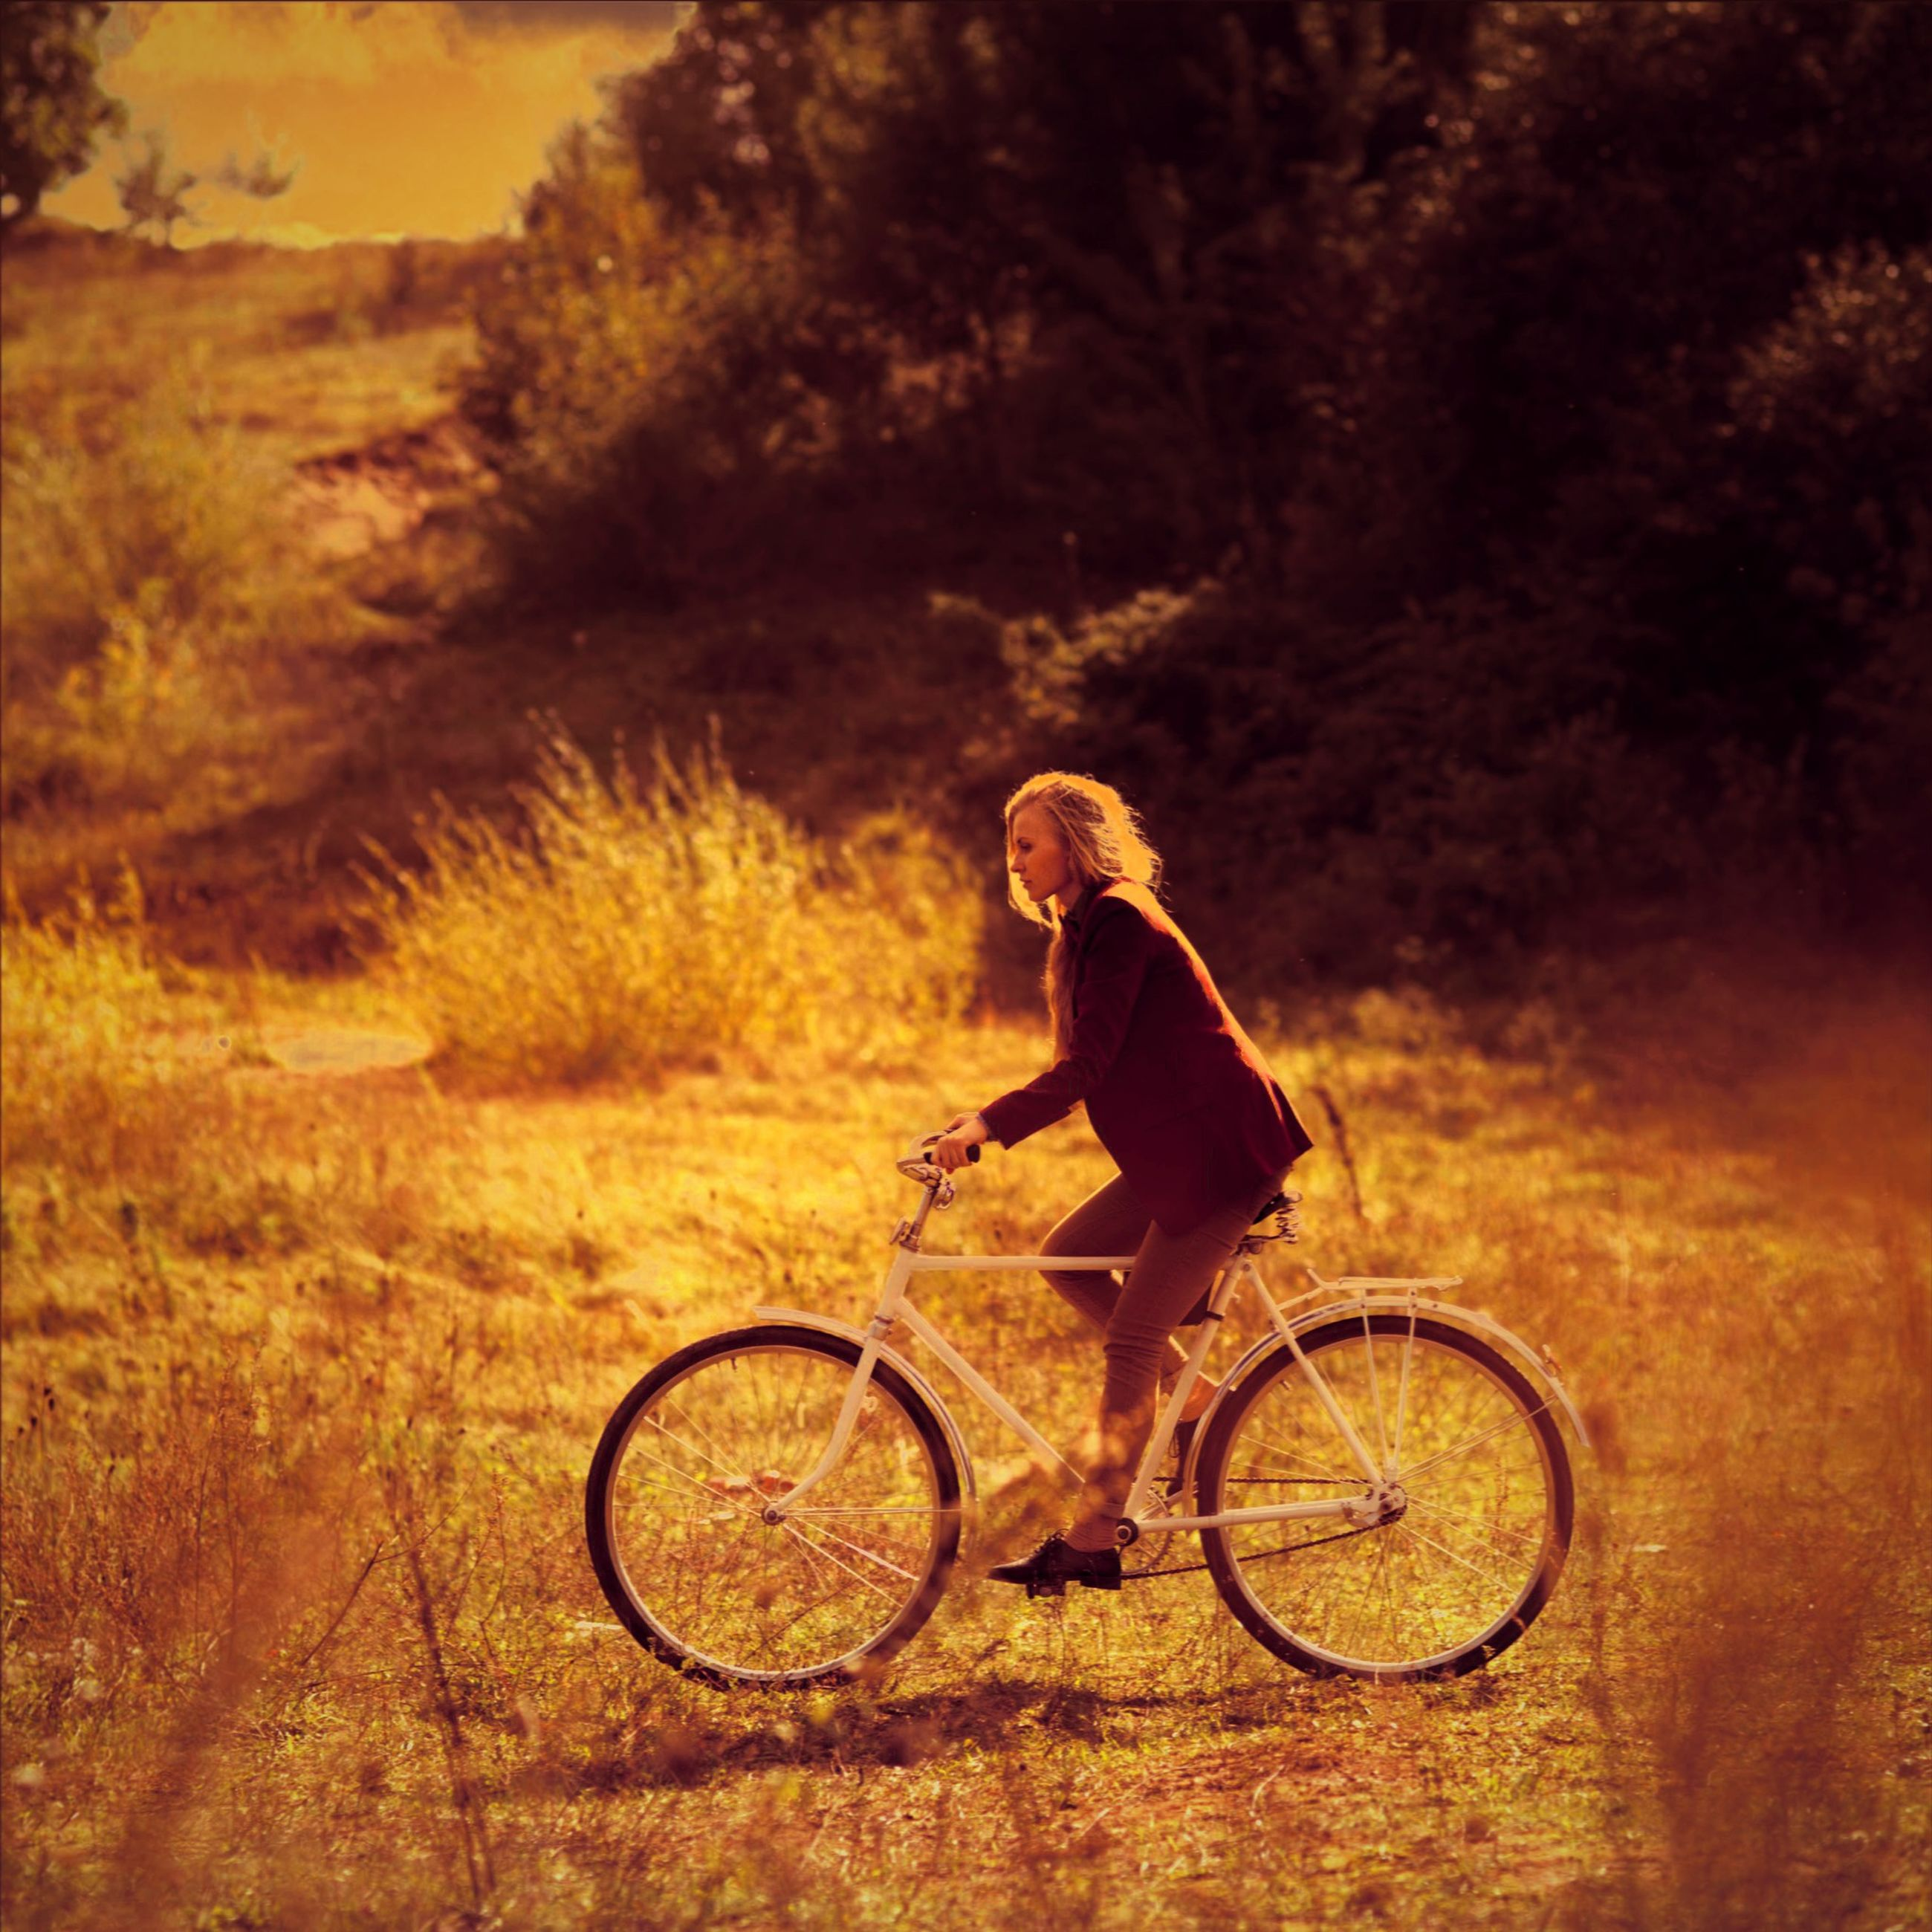 bicycle, full length, lifestyles, leisure activity, riding, mode of transport, transportation, land vehicle, casual clothing, tree, side view, young adult, outdoors, nature, men, person, cycling, travel